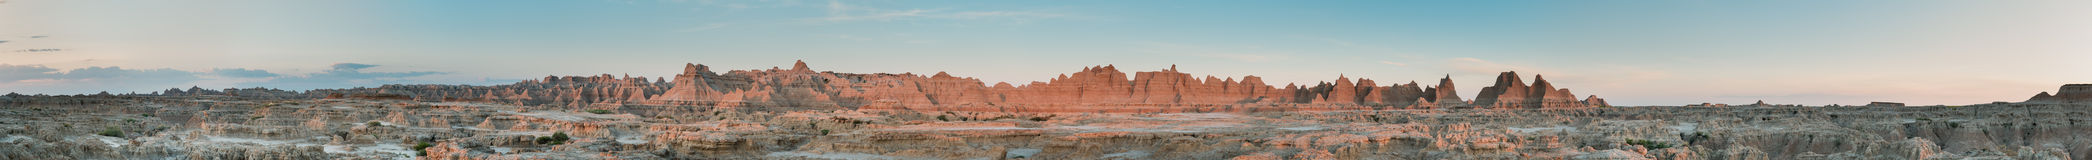 Door Trail Panorama in Badlands National Park Royalty Free Stock Photo